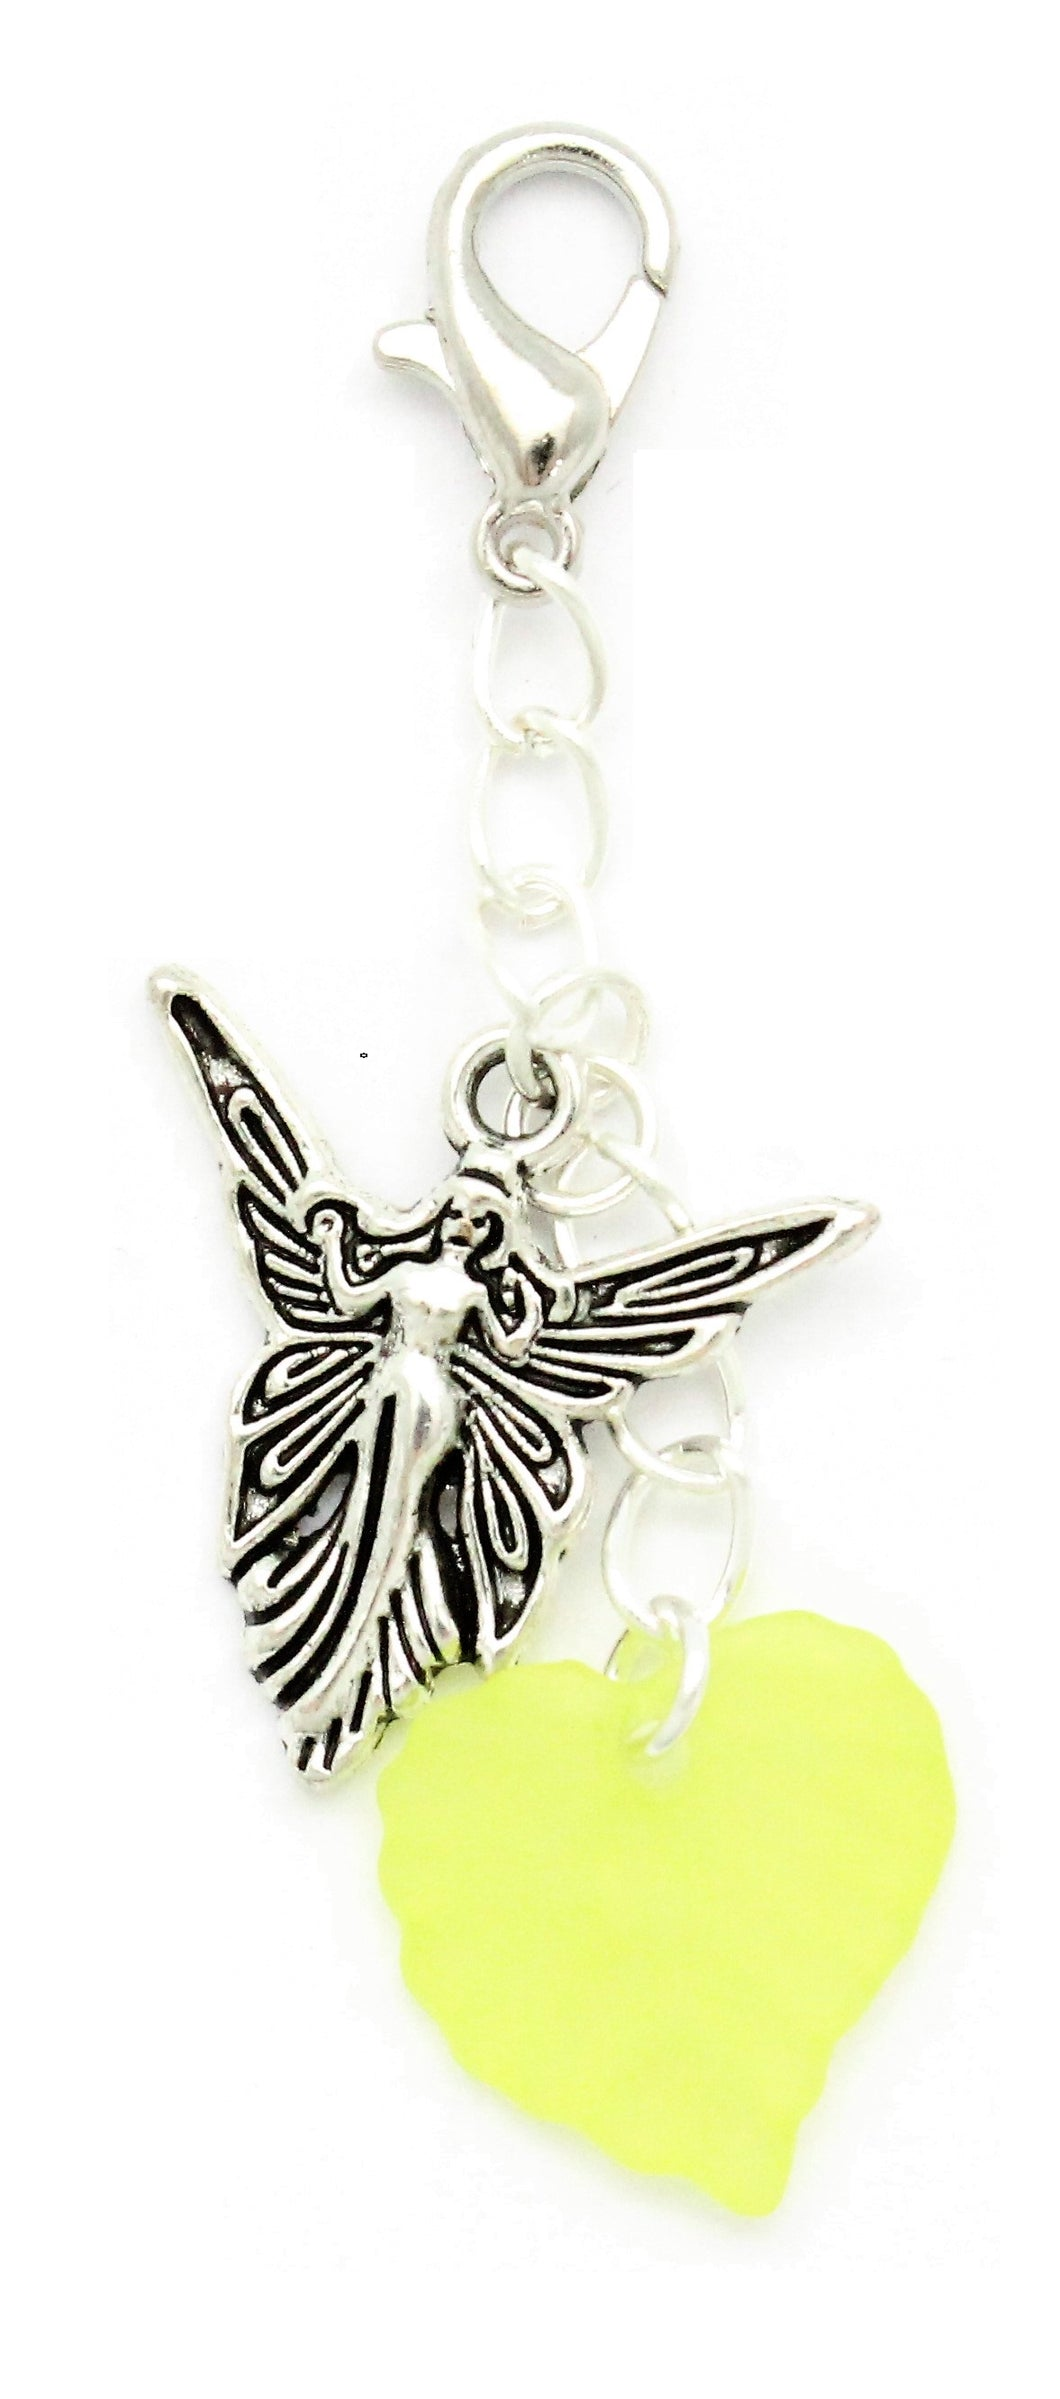 AVBeads Clip-On Charms Fairy and Leaf Charms Silver and Green JWL-CC-1001